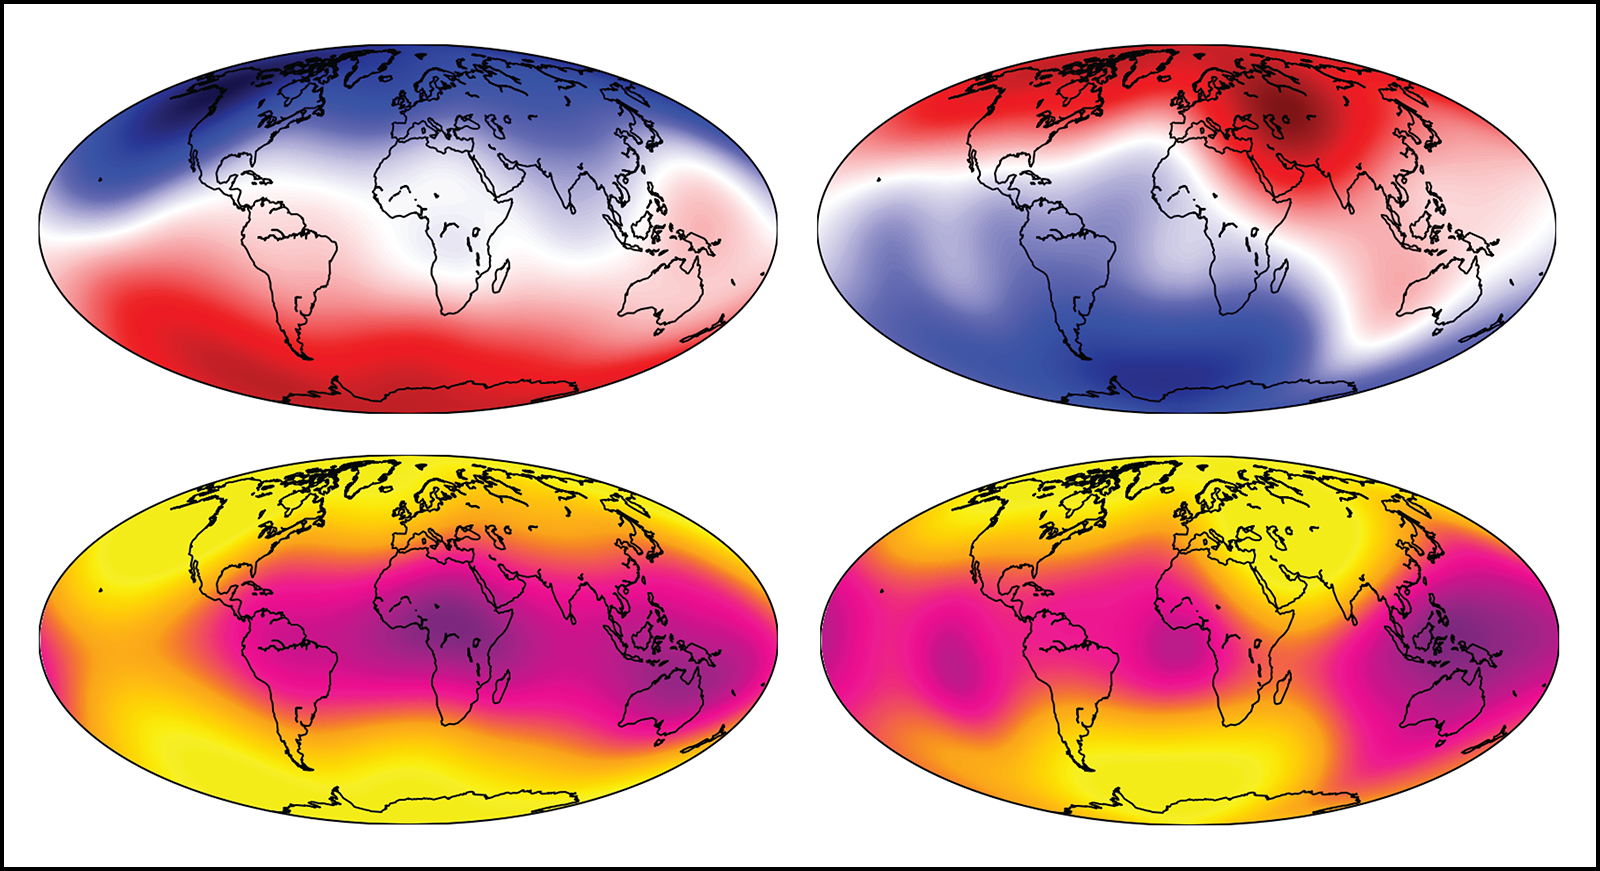 Figures depicting a reversal of Earth's magnetic field produced in a simulation of the geodynamo